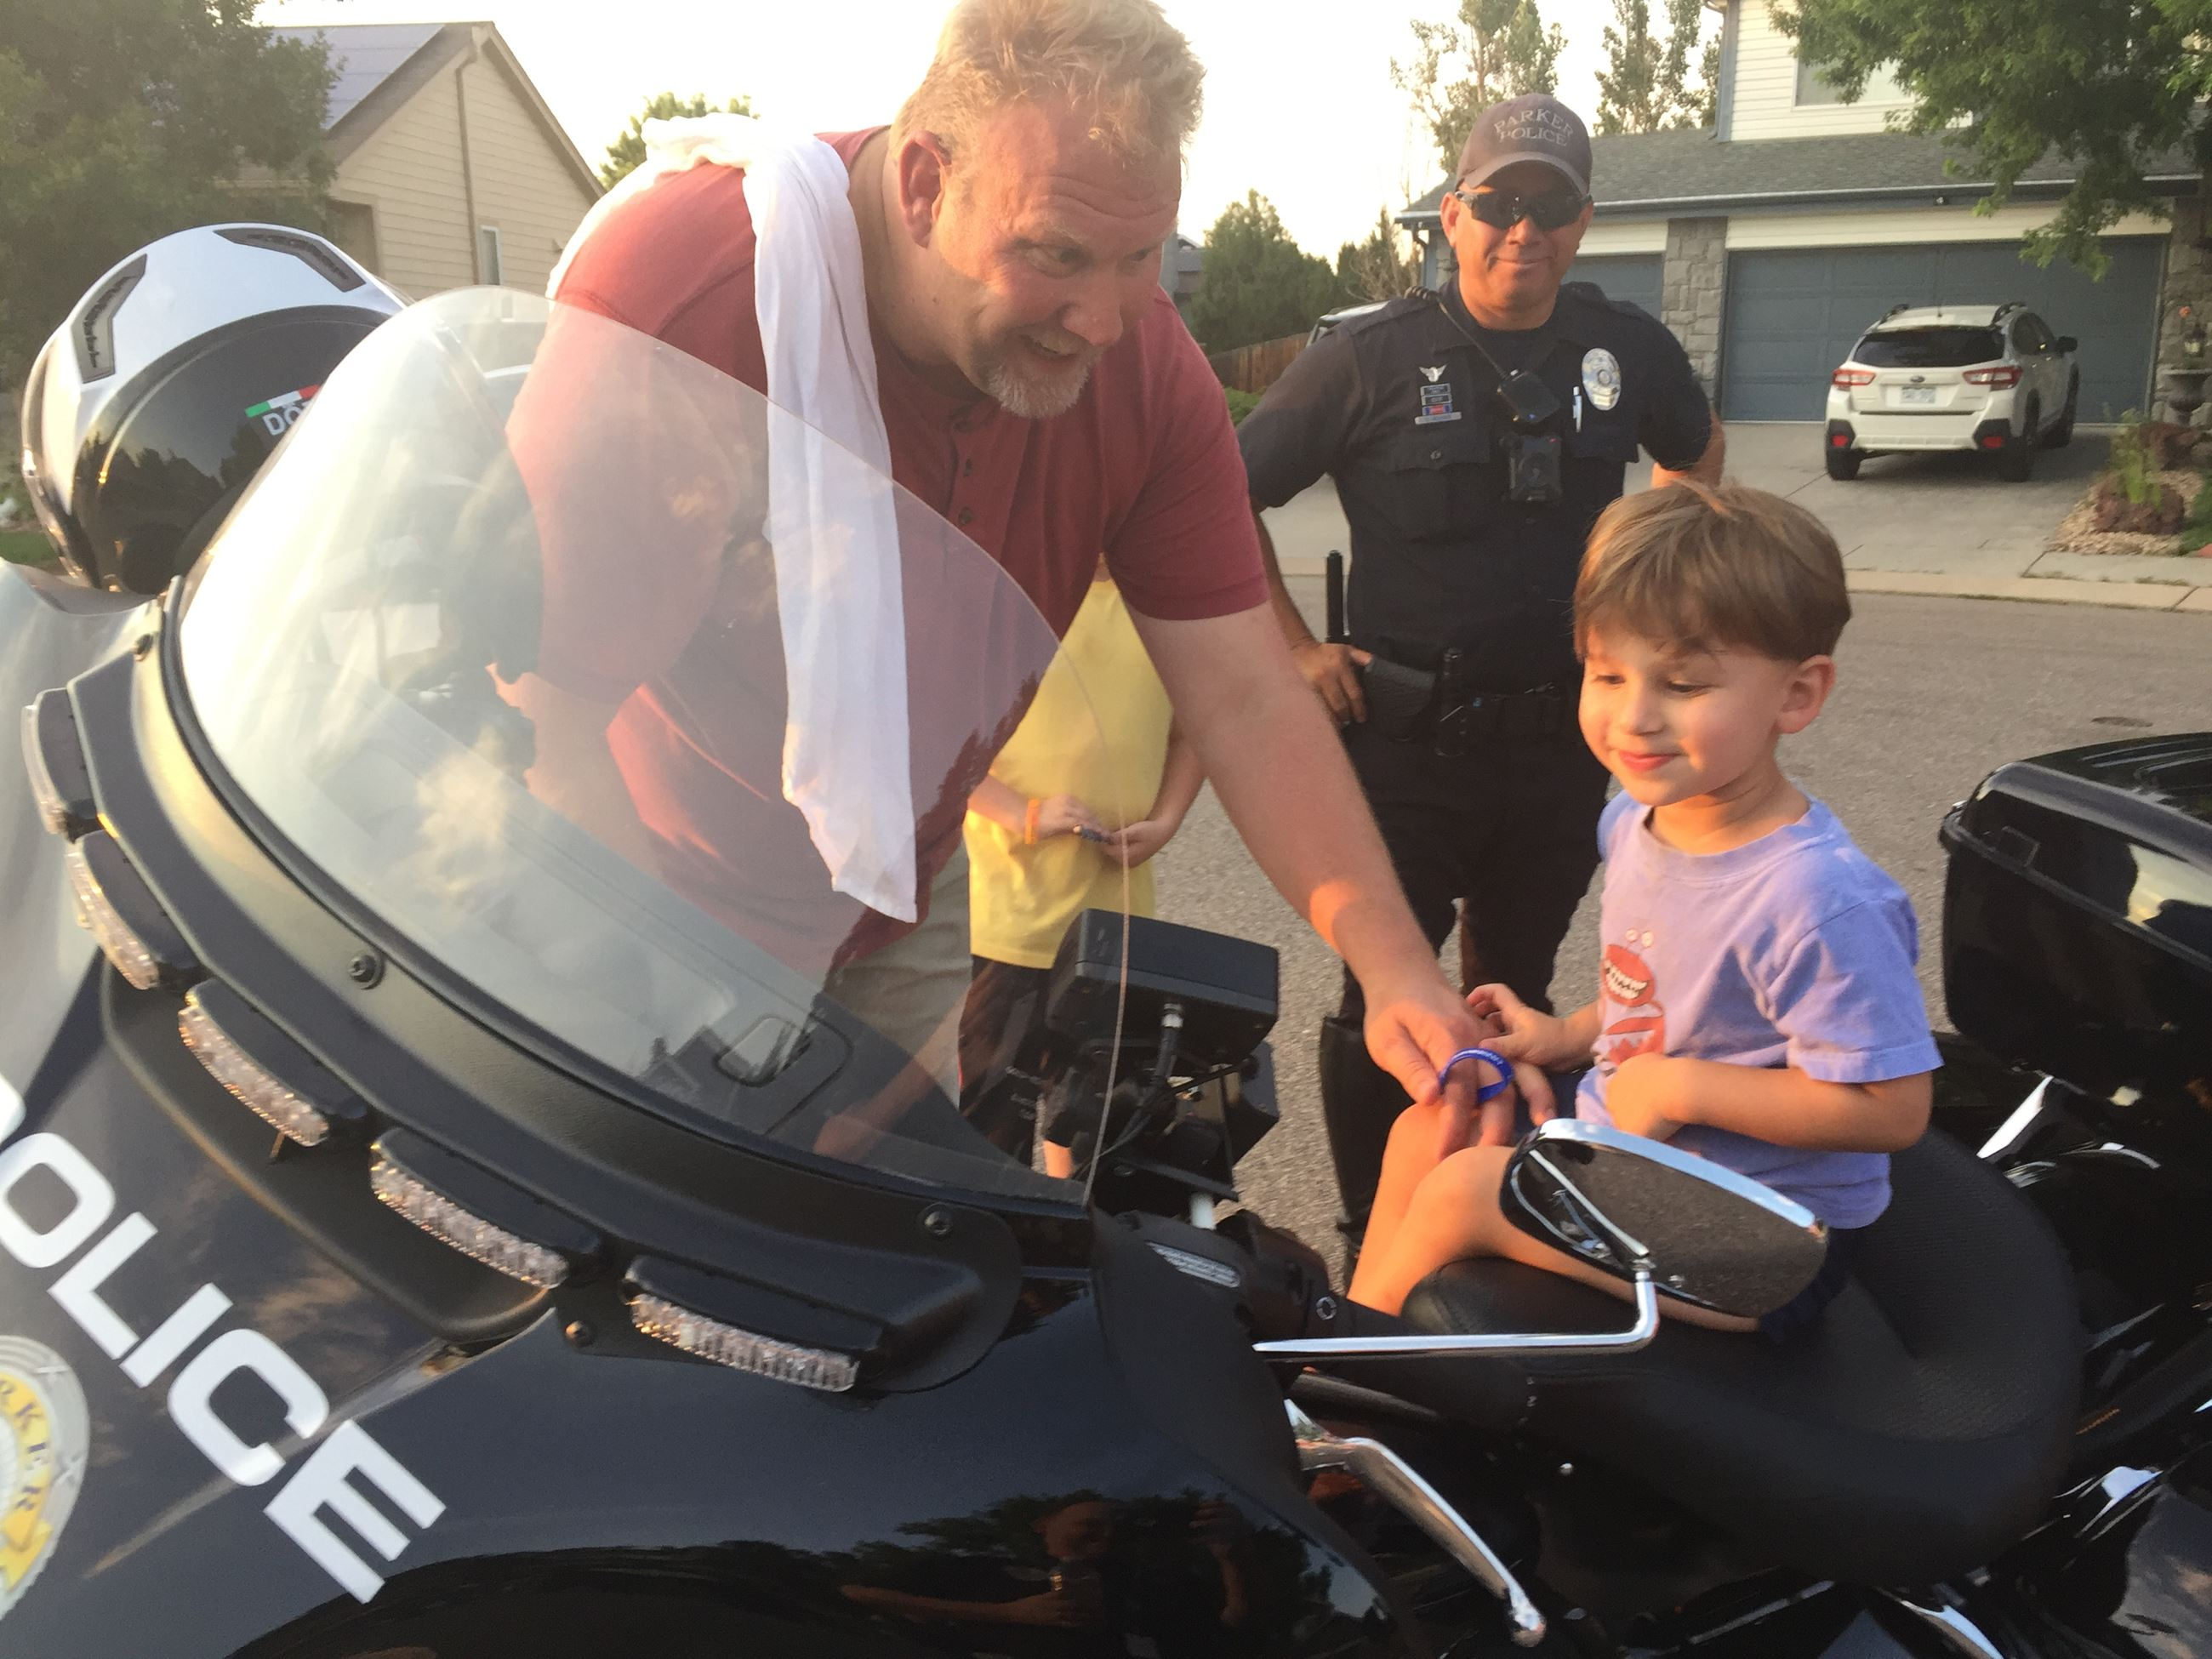 small child sitting on police motorcycle